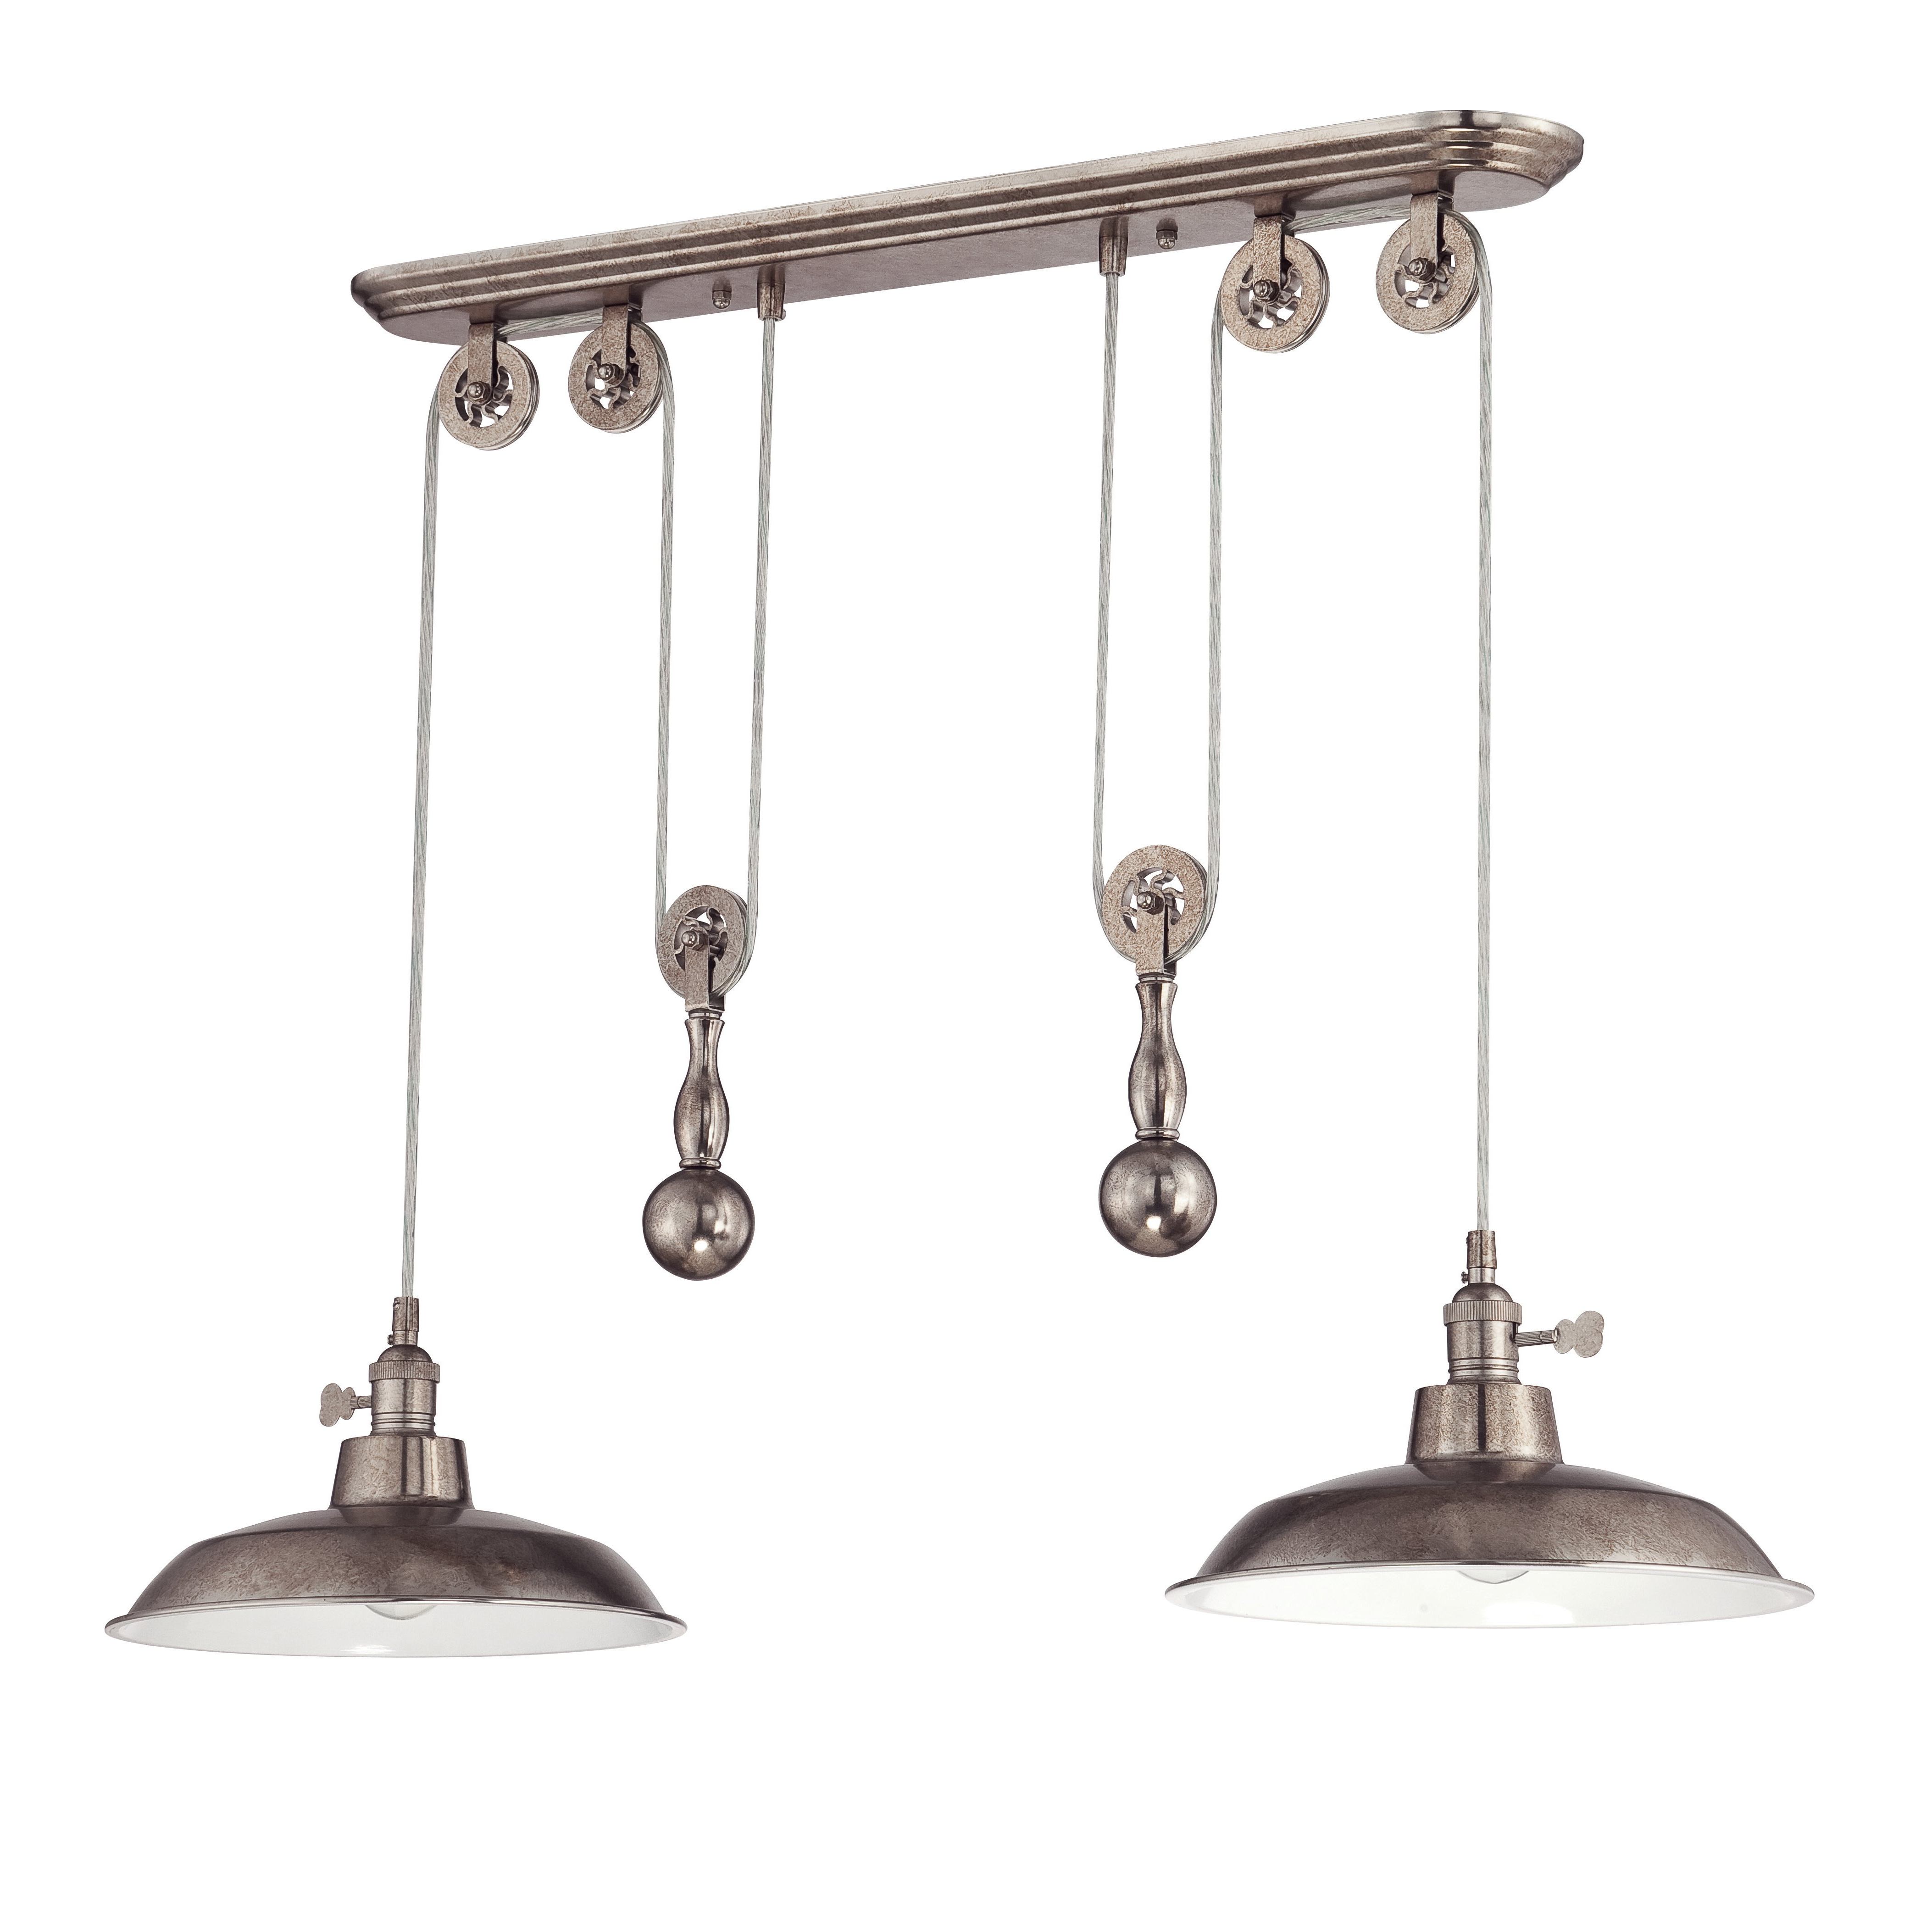 2019 Ariel 2 Light Kitchen Island Dome Pendants With Regard To Ariel 2 Light Kitchen Island Dome Pendant (View 1 of 20)